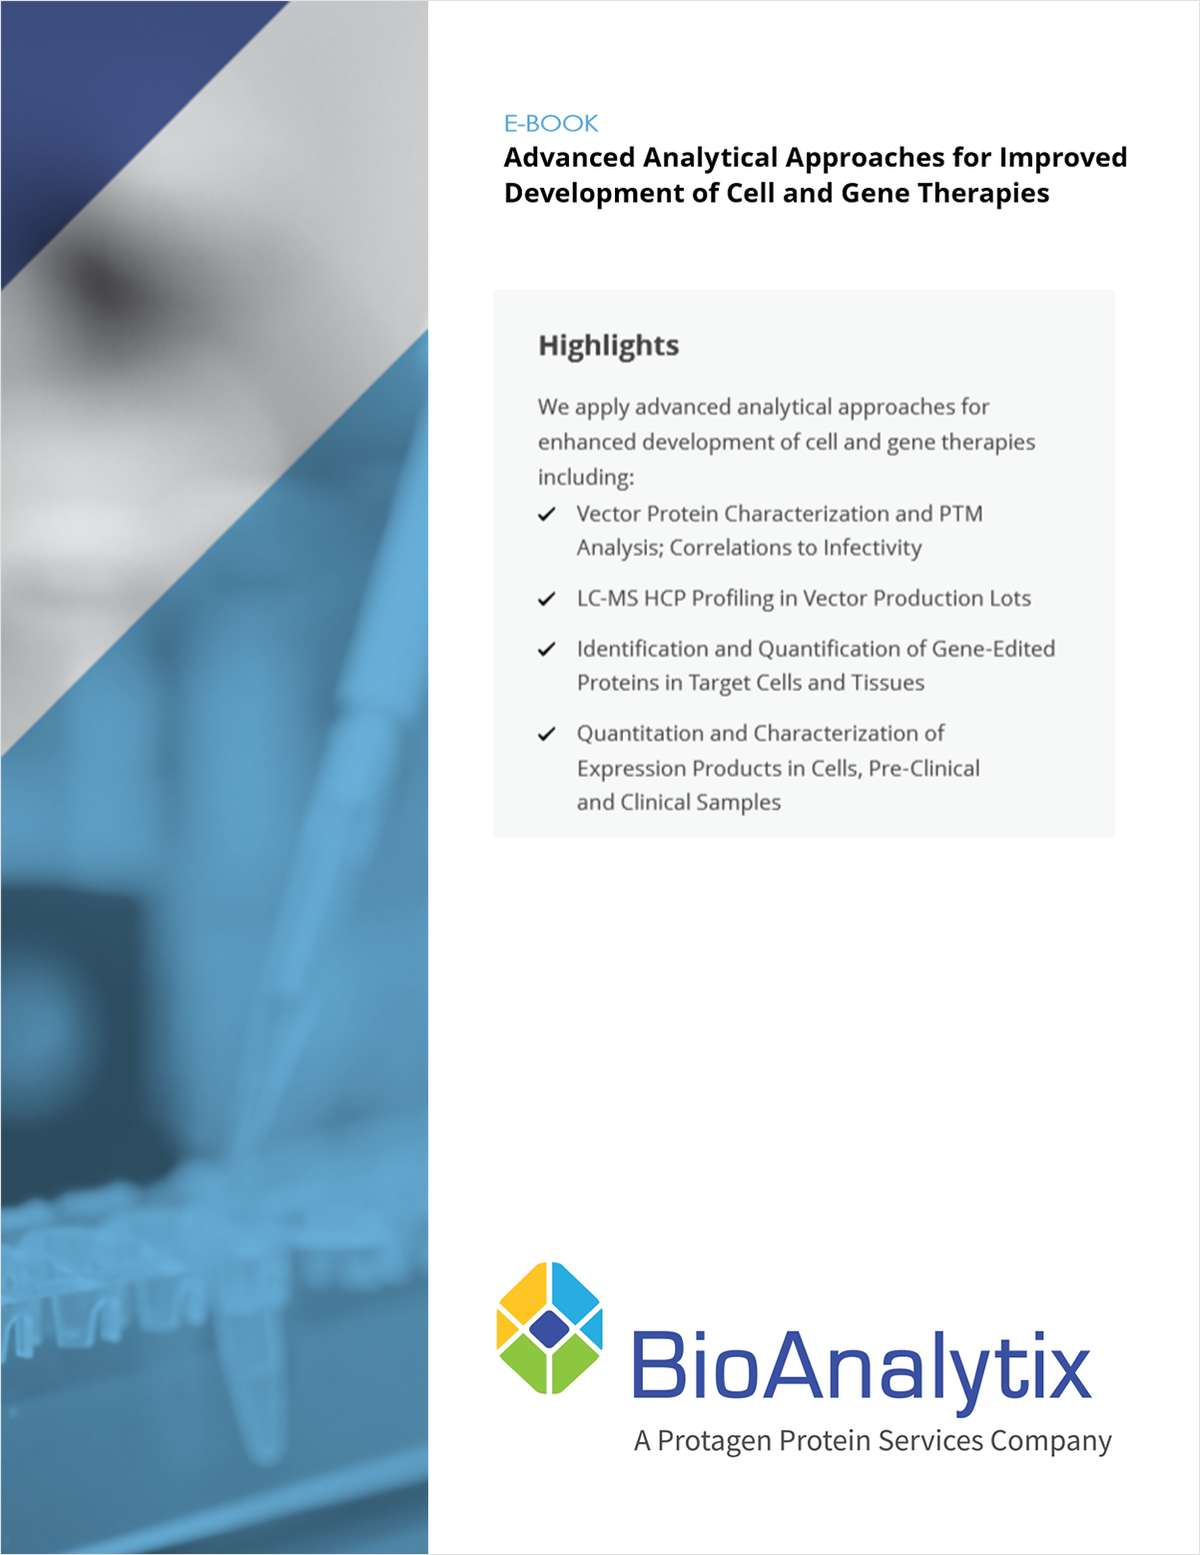 Advanced Analytical Approaches for Improved Development of Cell and Gene Therapies